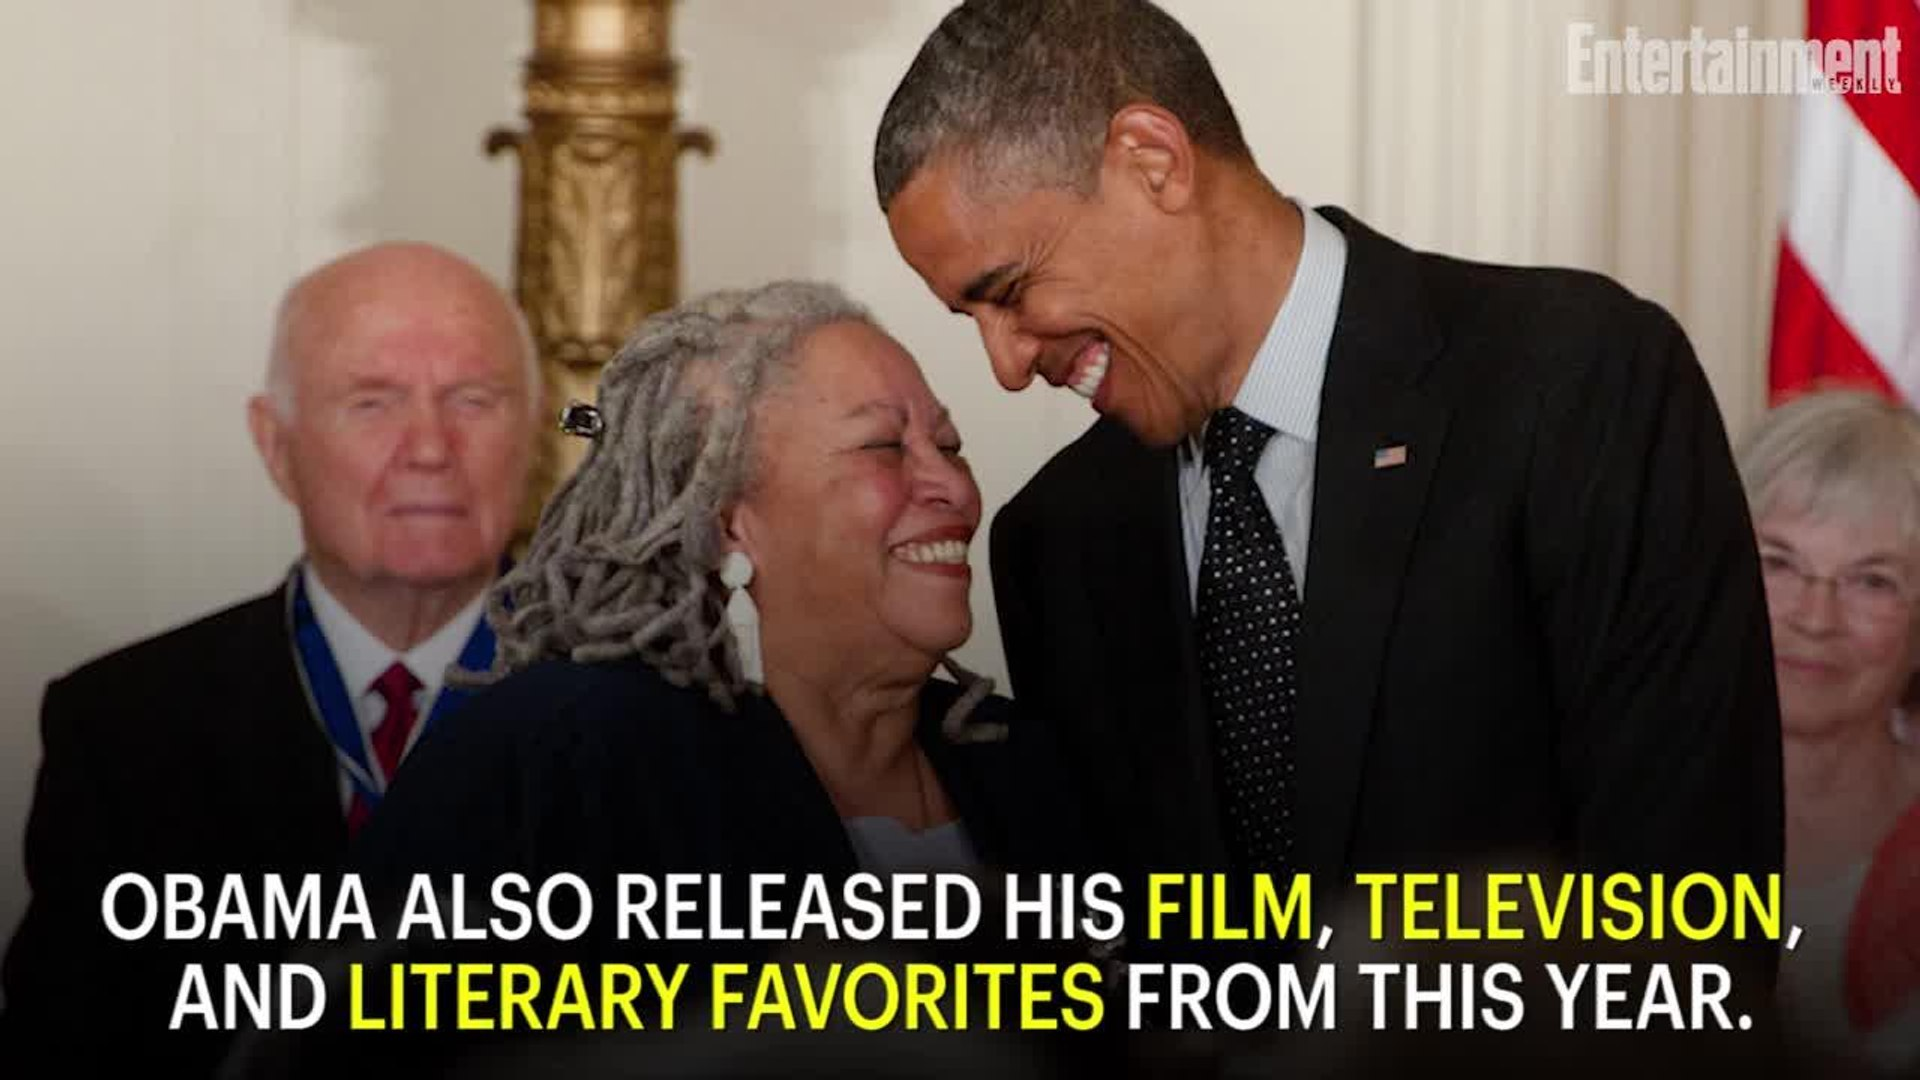 Barack Obama Dropped His List Of 2019 Favorites Including Songs, Books, Movies, And Tv Shows.